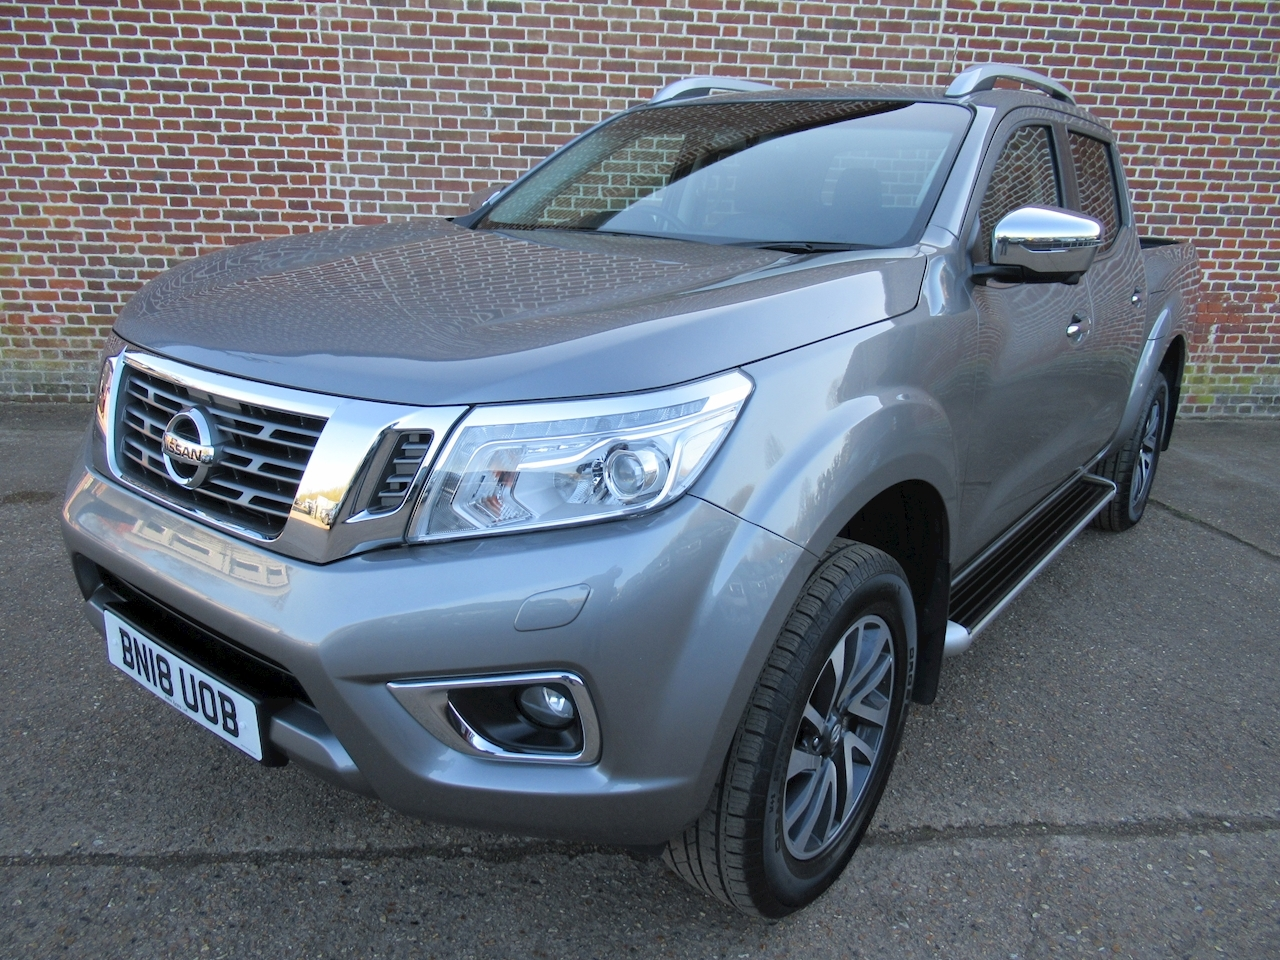 Nissan Navara Dci Tekna 4X4 Shr Dcb 2.3 4dr Pick-Up Manual Diesel